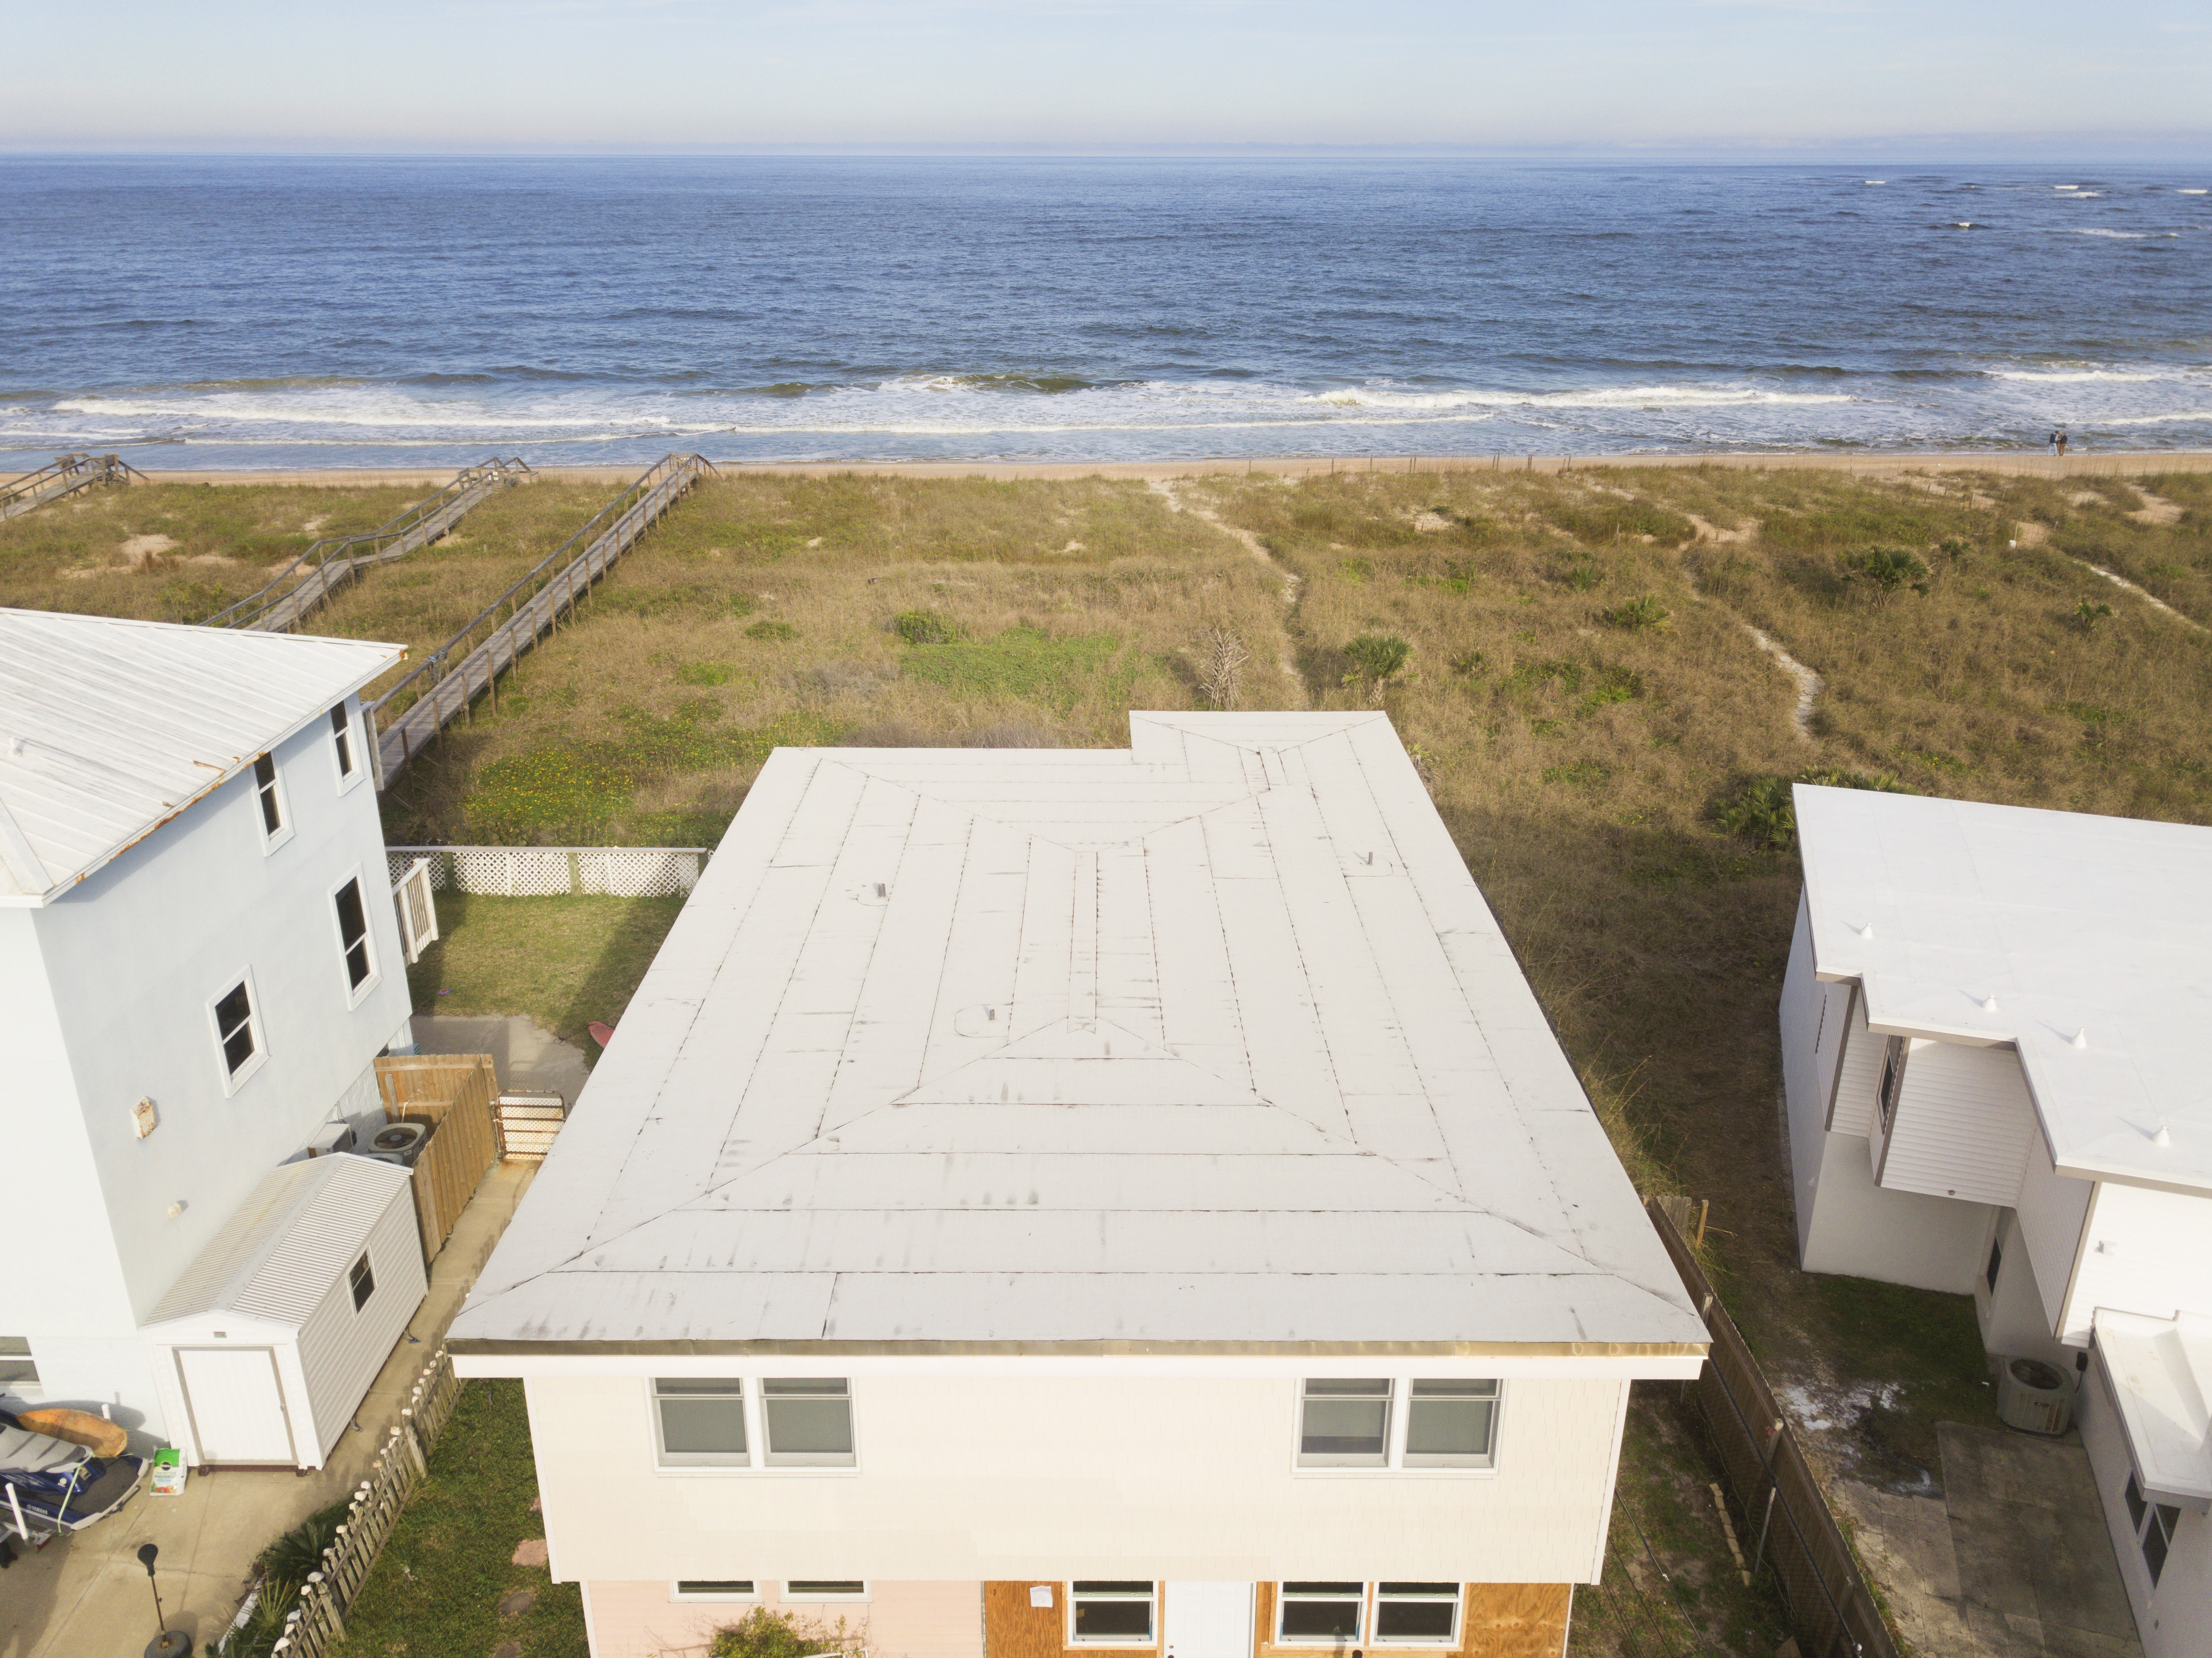 Beachcomber 1 A To Z Roofing And Waterproofing